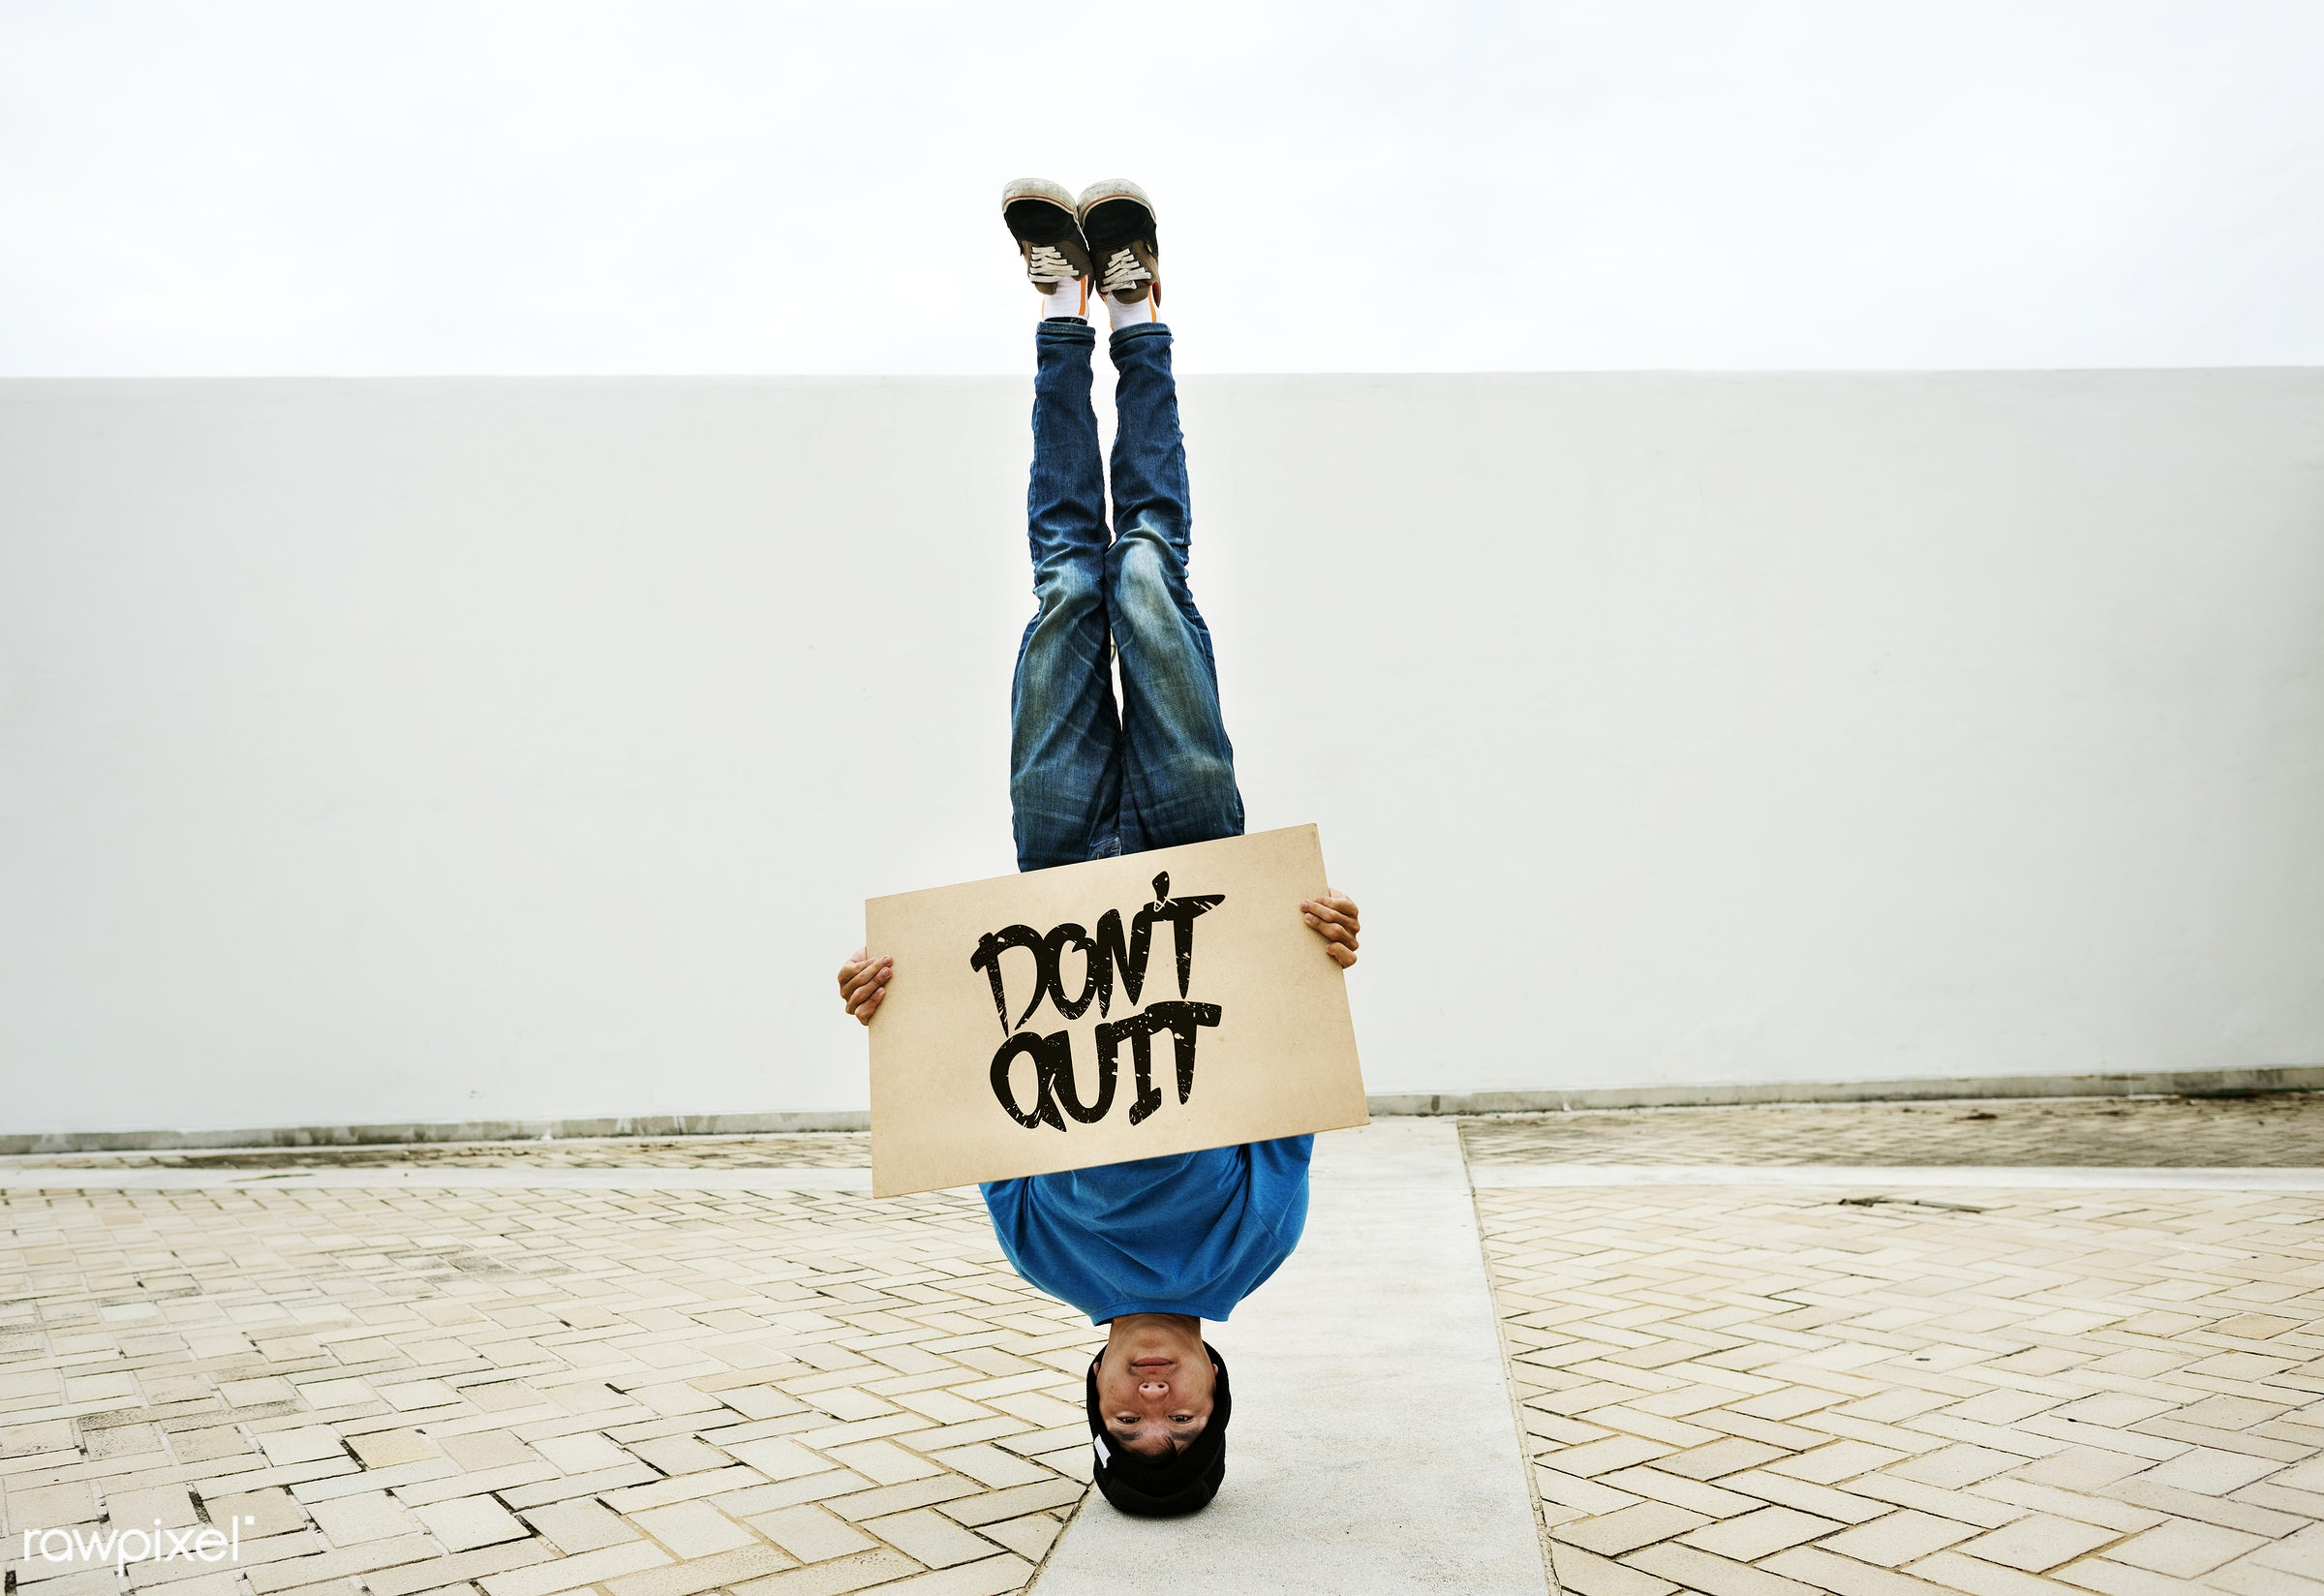 vertical, person, motivation, signage, upside down, asian, attitude, quote, casual, alone, man, banner, text, jeans,...